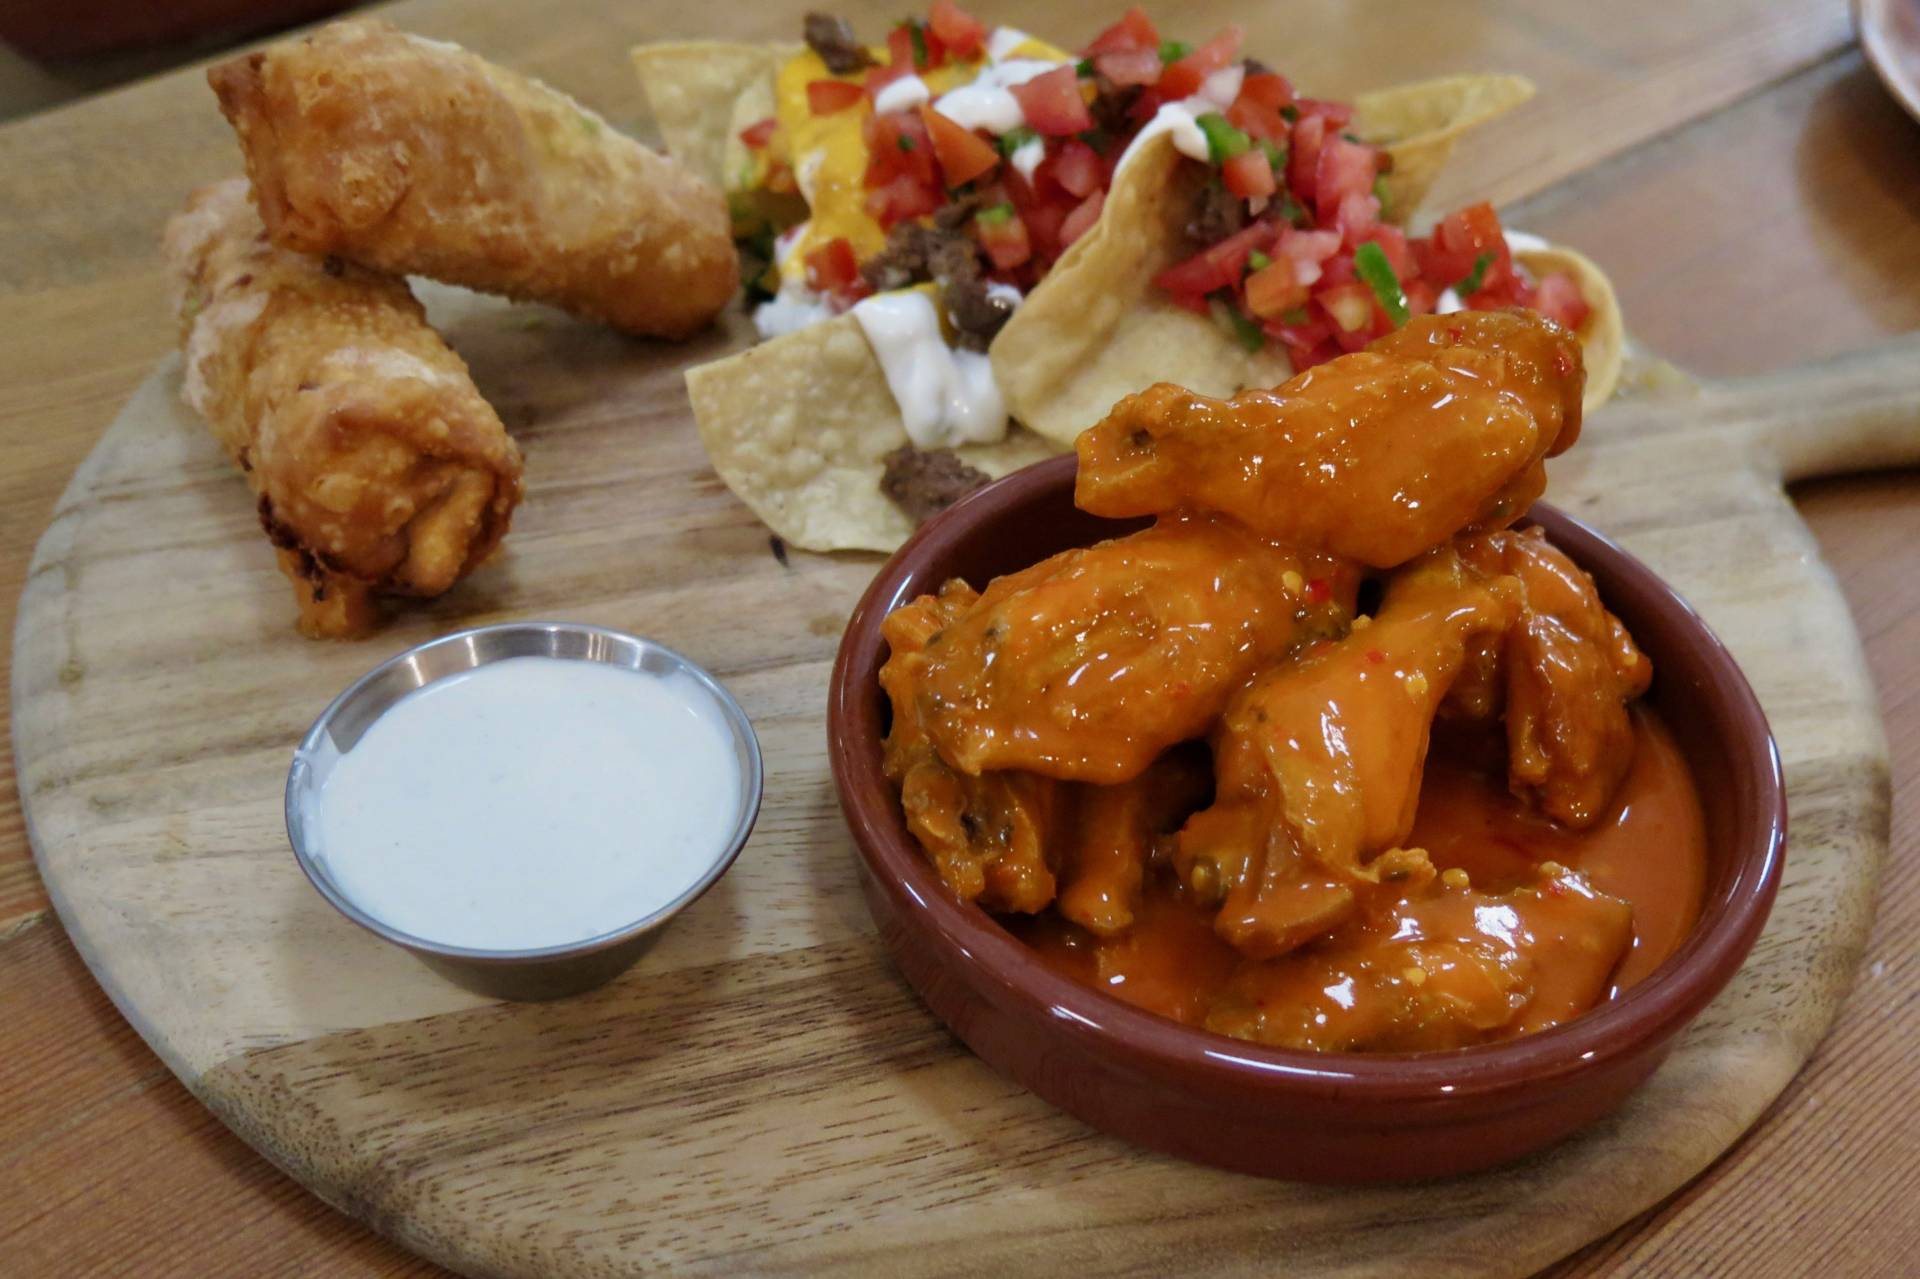 The Board also offers some wicked snacks, from spicy wings to Board rolls to nachos.